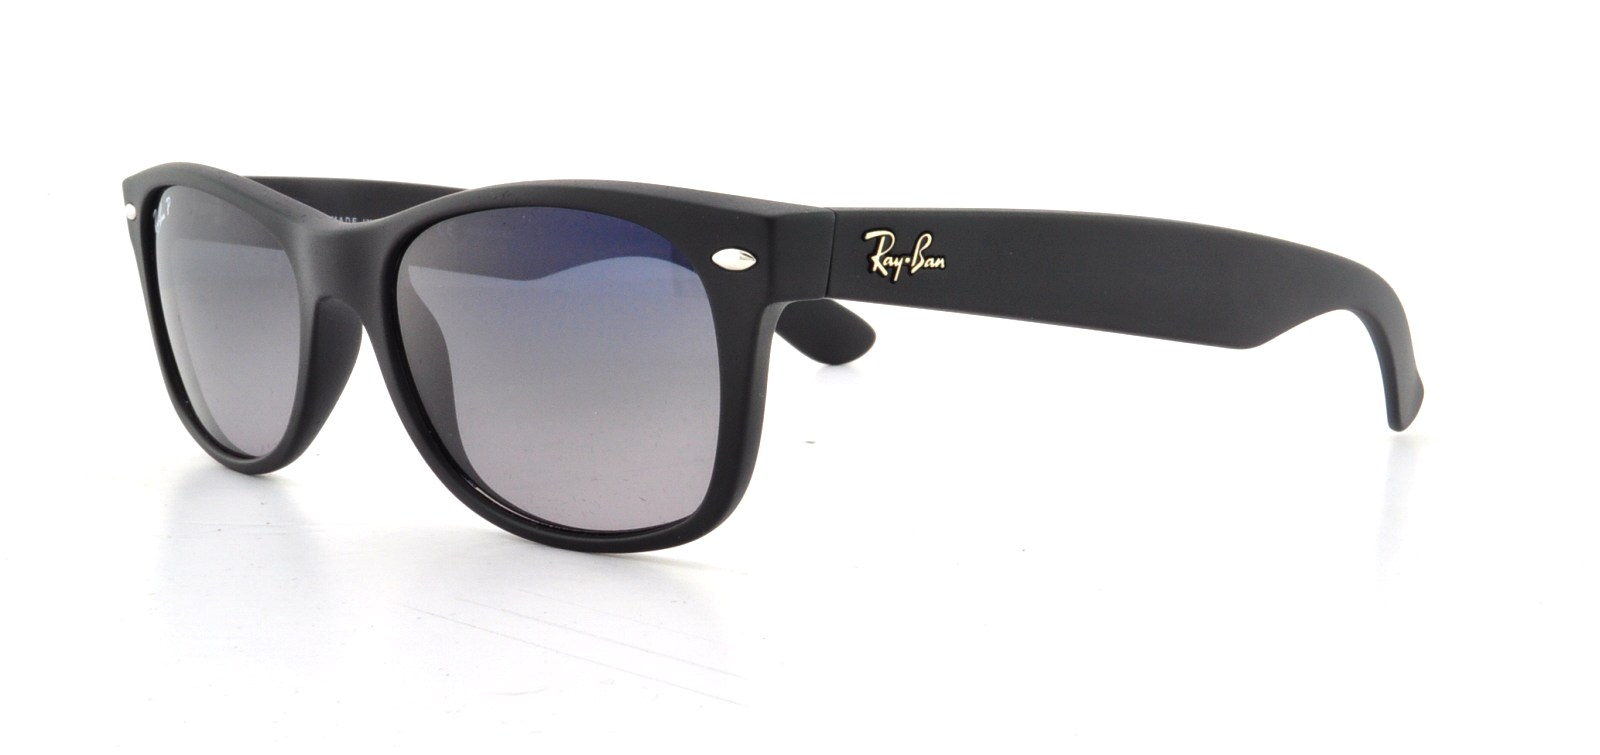 Picture of Ray Ban RB2132 New Wayfarer